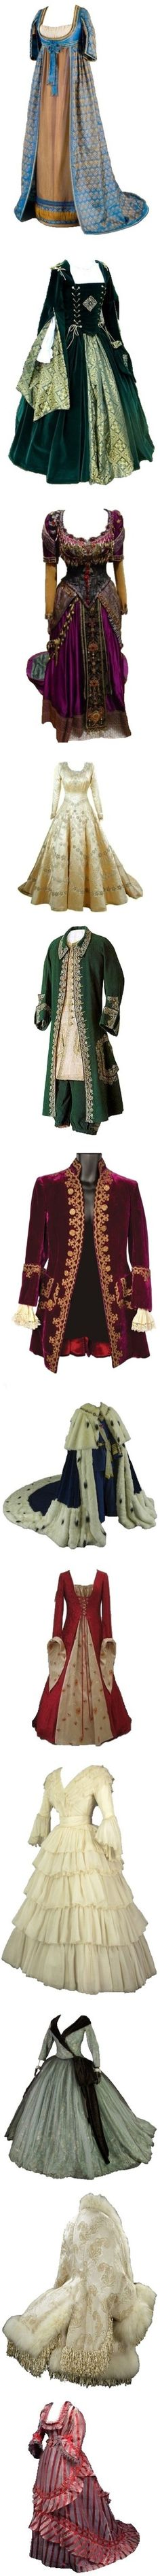 """Historical clothes"" by caddow ❤ liked on Polyvore"